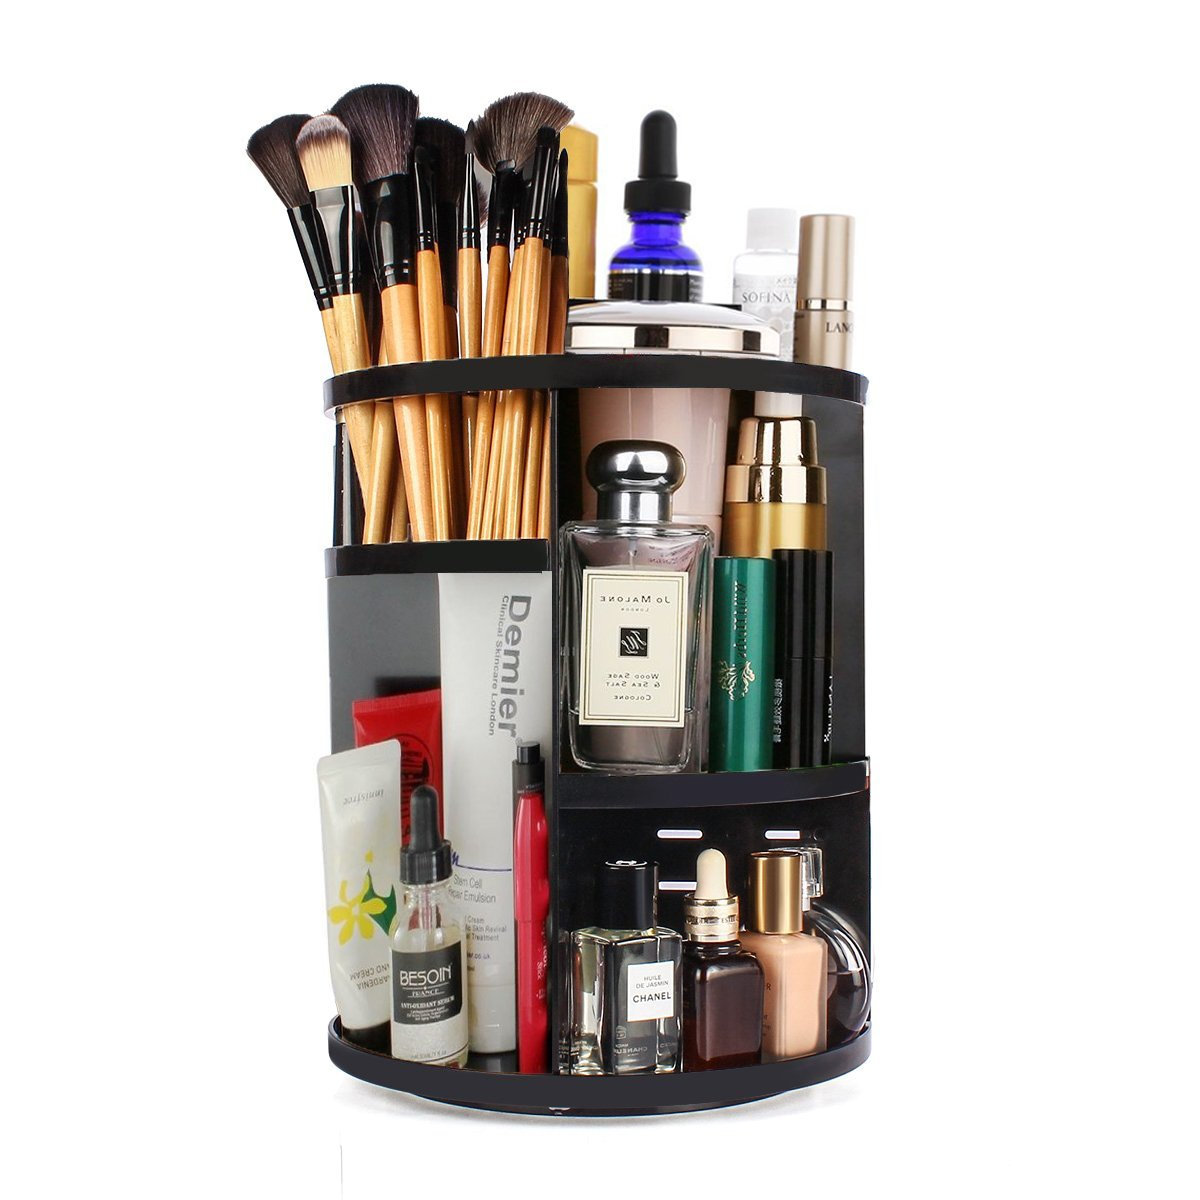 Makeup Cosmetic Organizer, KEBE 360-Degree Rotating DIY Detachable Multi-Function Cosmetics Organizer Box, Large Capacity Adjustable Cosmetic Storage Unit Great for Countertop and Bathroom,Black